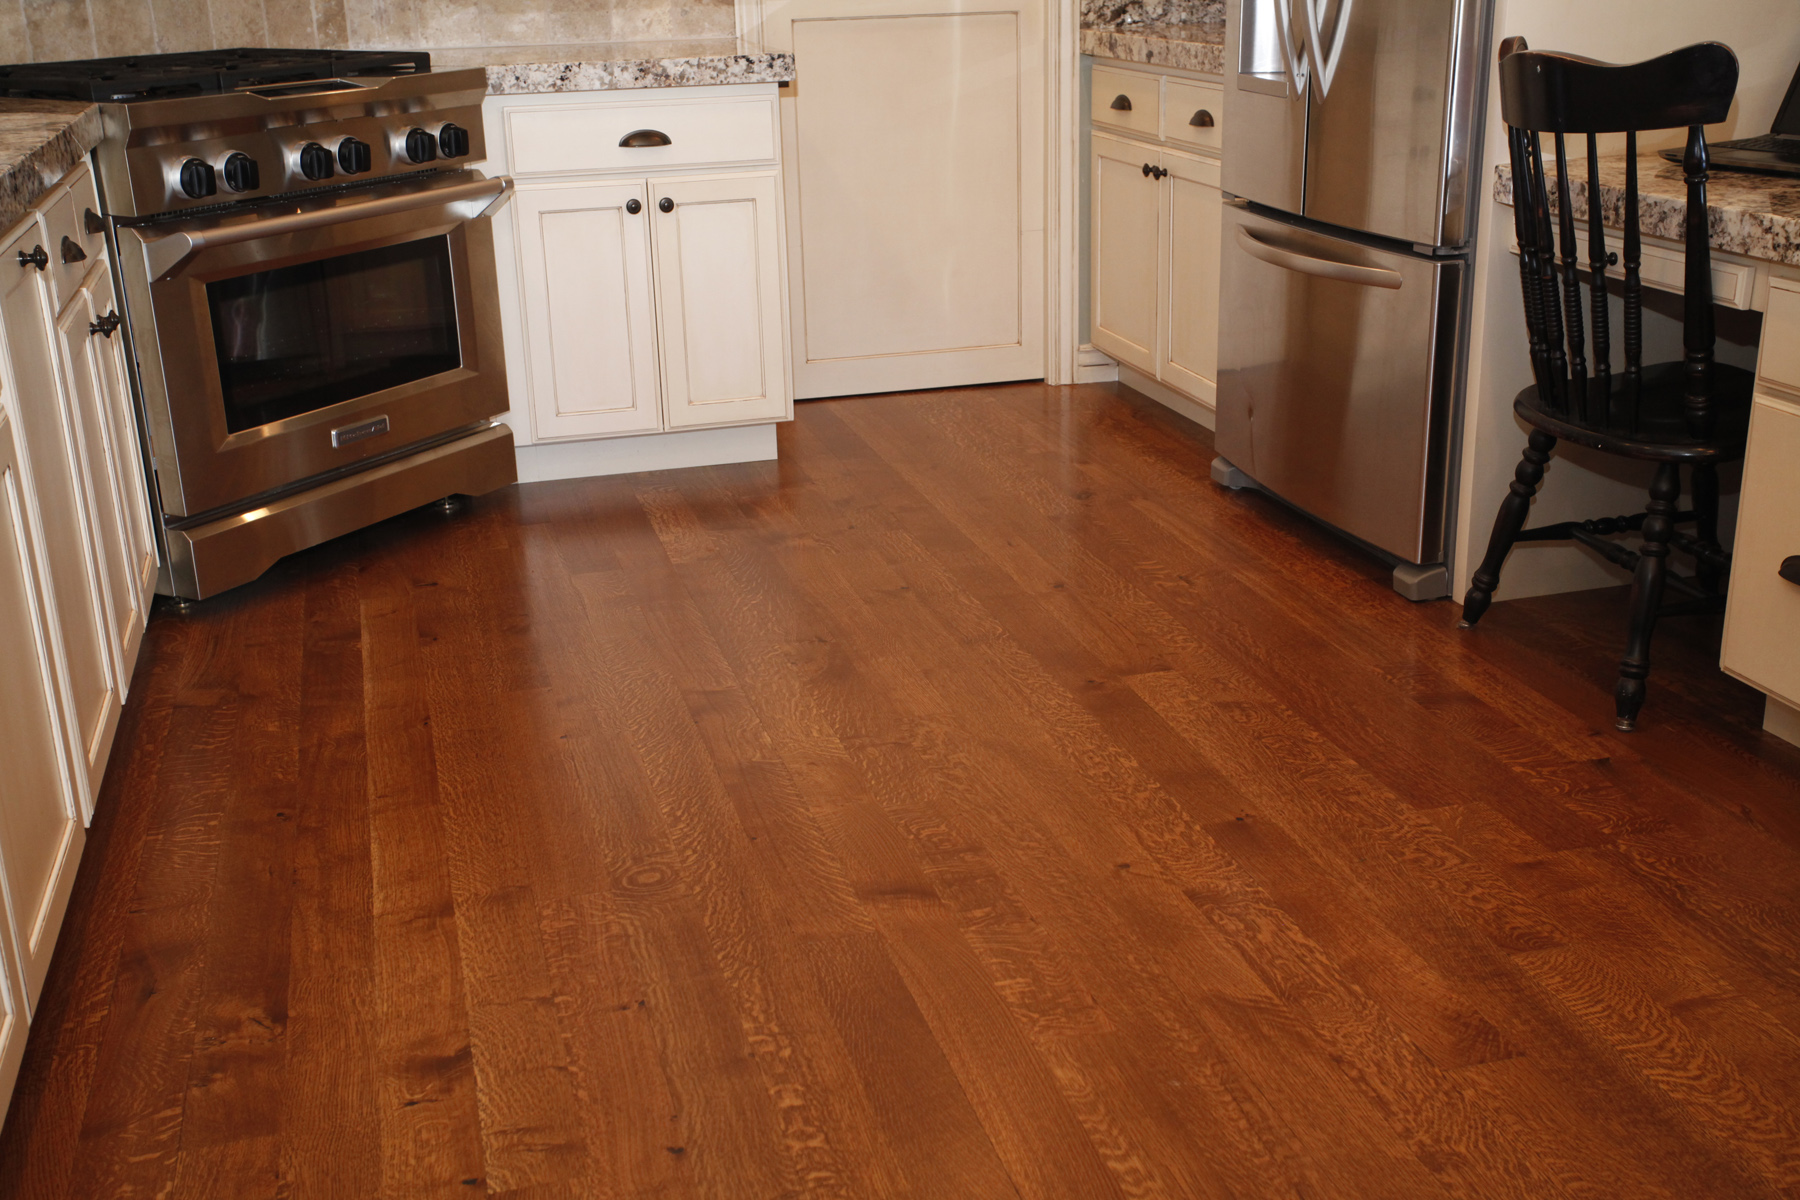 hardwood floor kitchens kitchen wood floors Kitchen Hardwood Floor